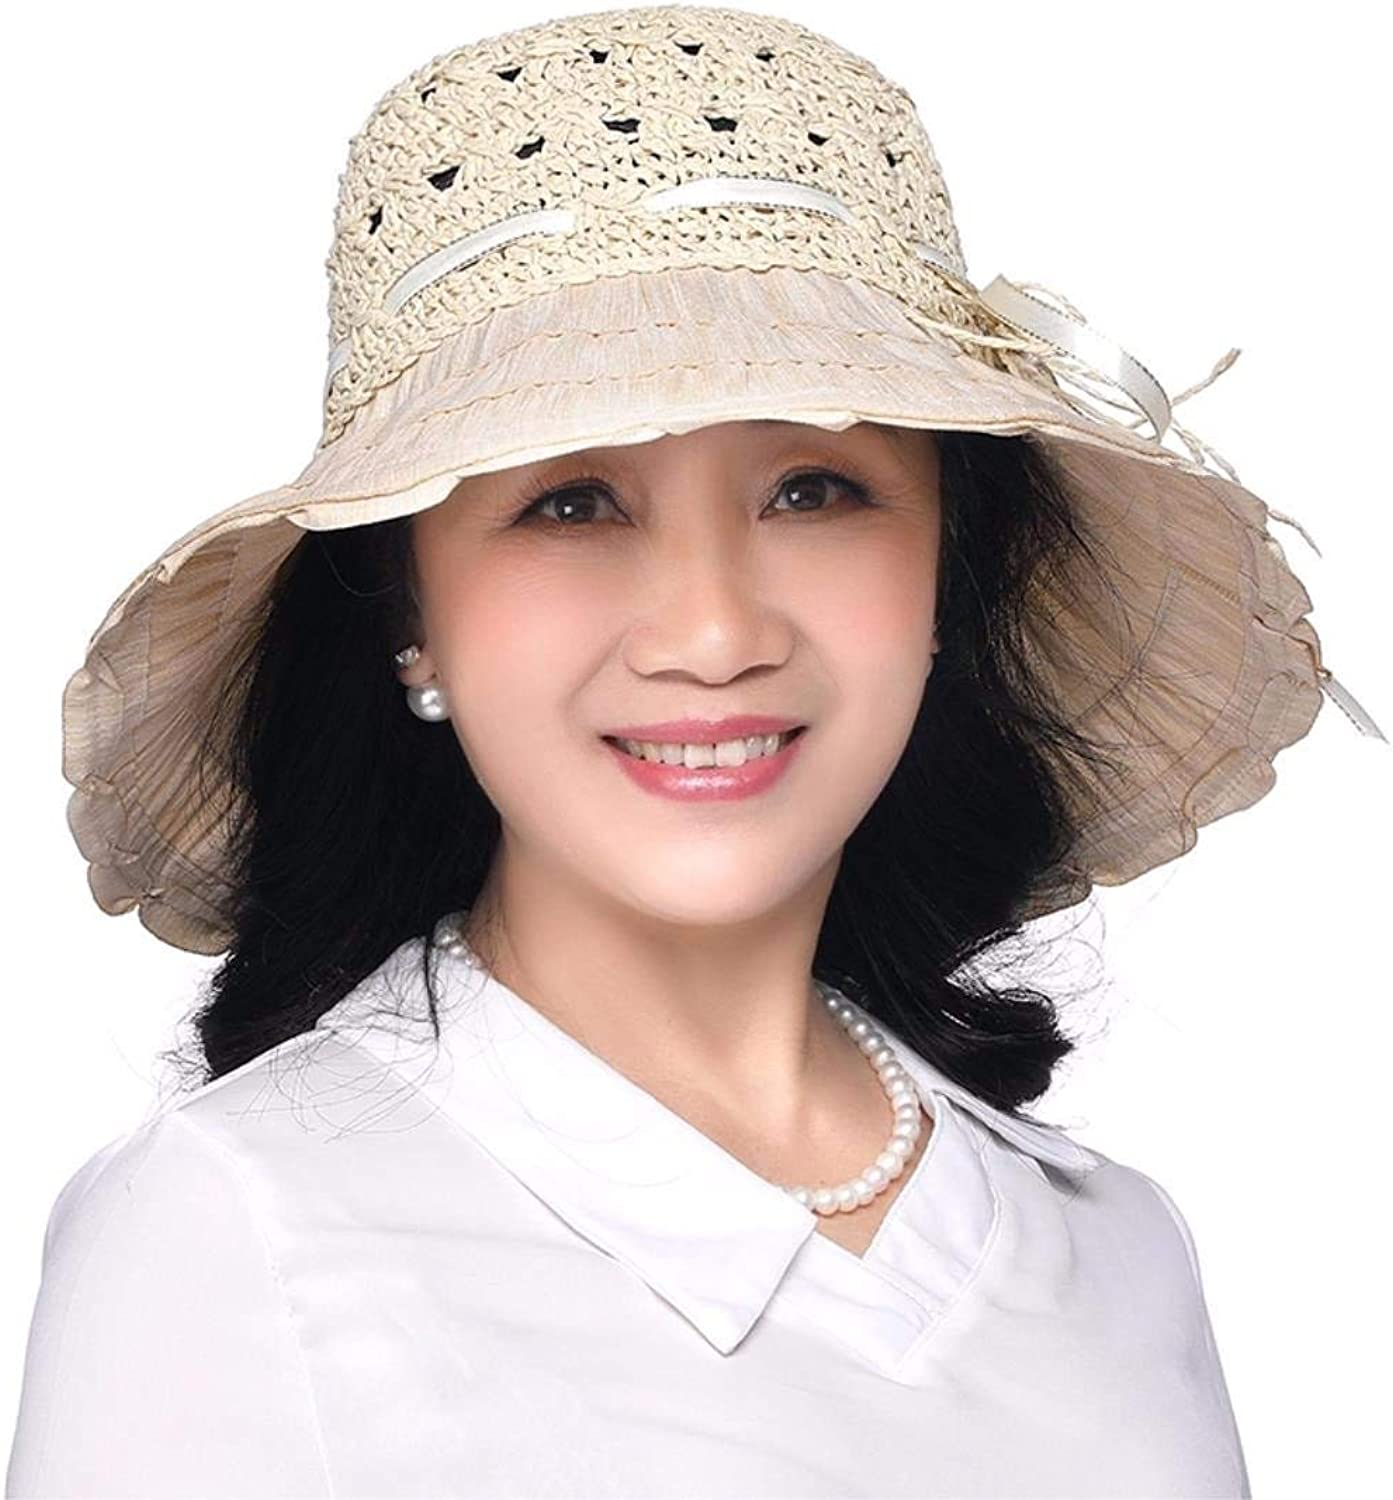 Dianye Gift for Mom Gift for grandmother Summer hat, summer resort, straw hat sunscreen hat Beach Hat middle age hat Hat